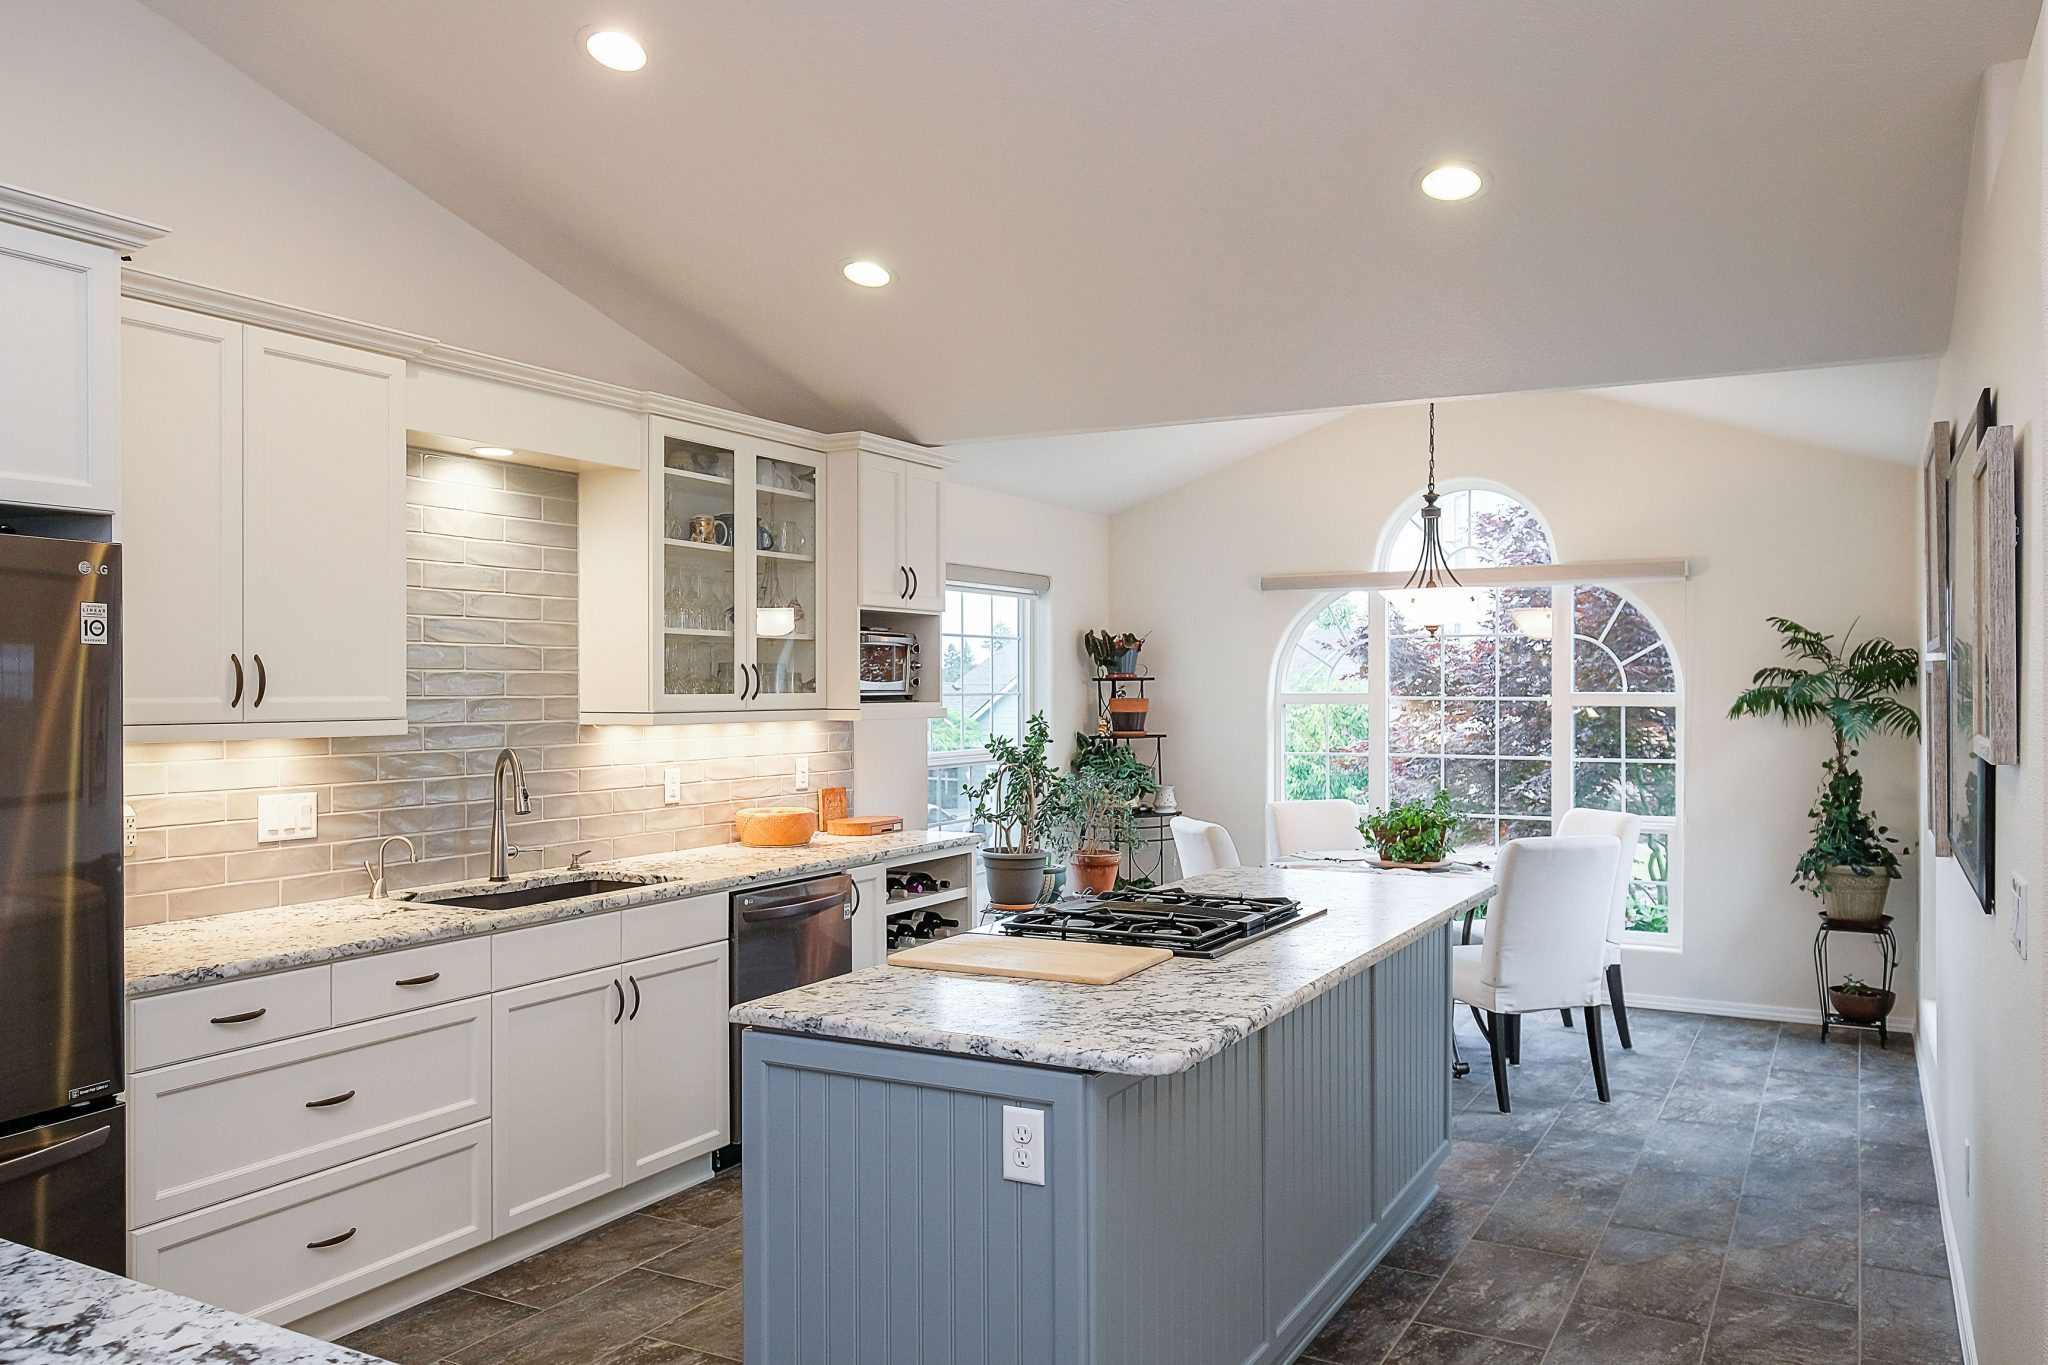 Great Kitchen Ideas 3 Great Kitchen Ideas And 1 Bad Idea  Dale's Remodeling Salem .